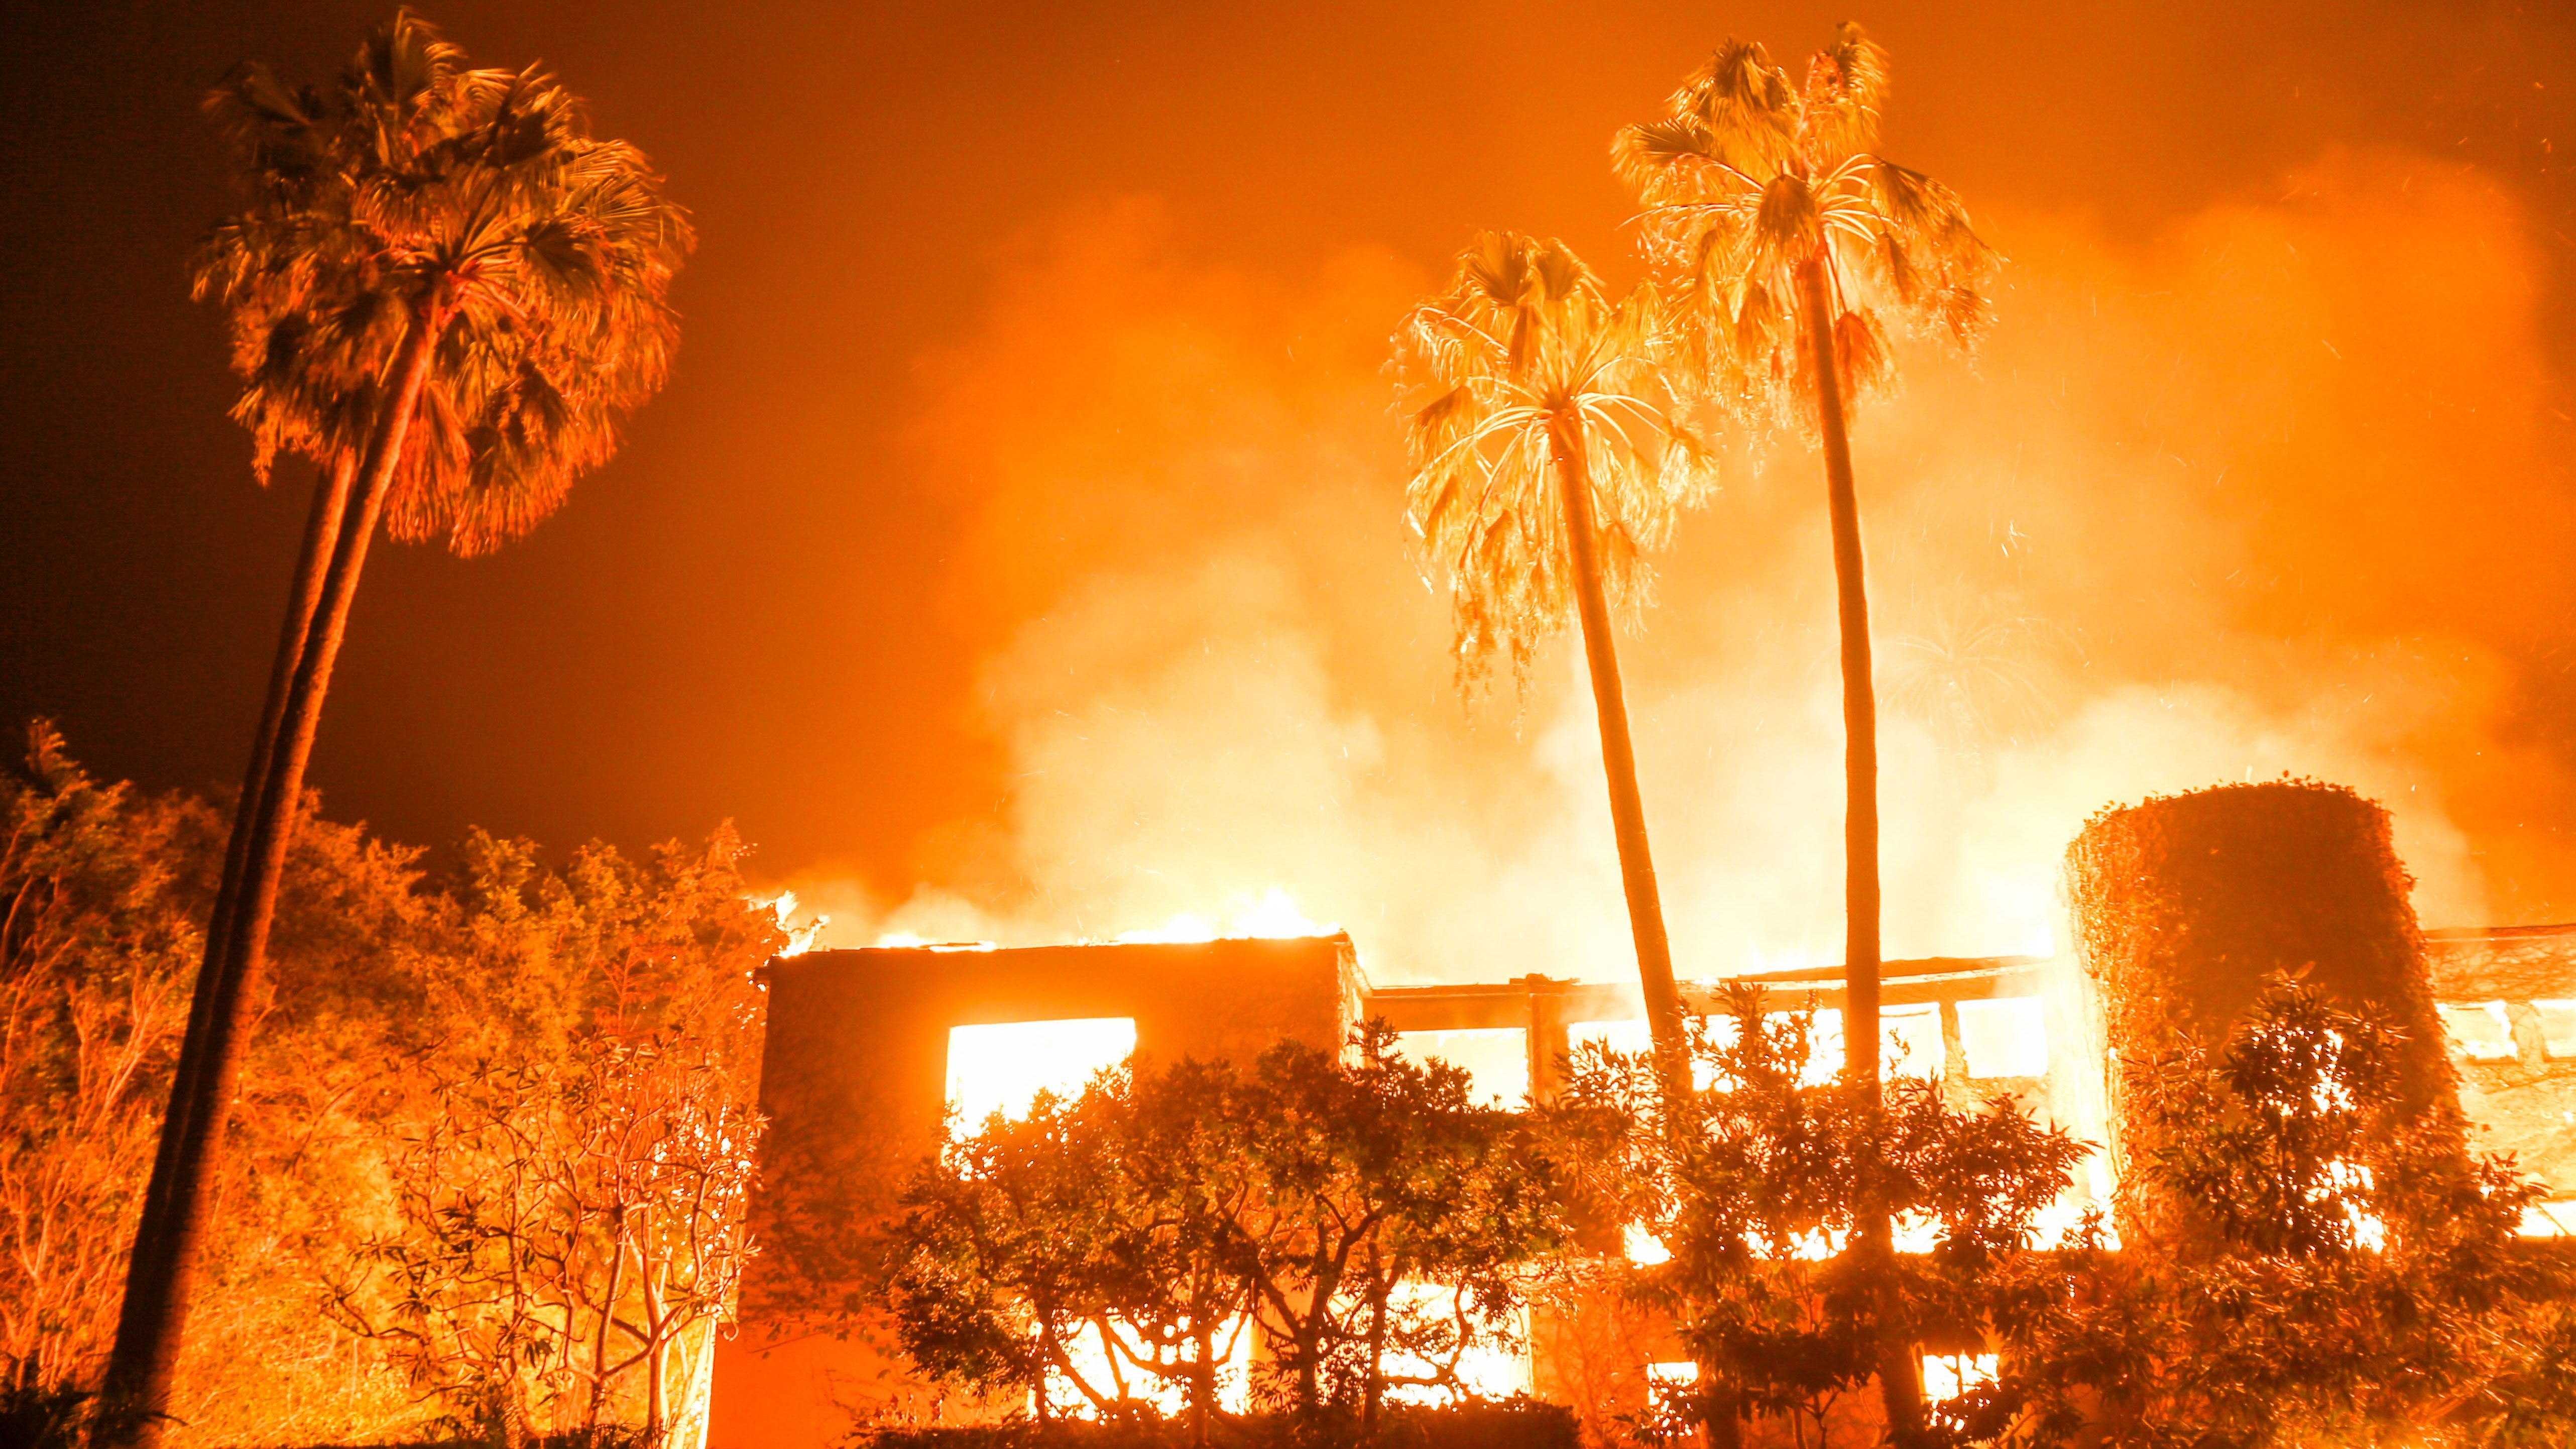 The Woolsey fire burns homes in Malibu, Calif., Friday, Nov. 9, 2018.